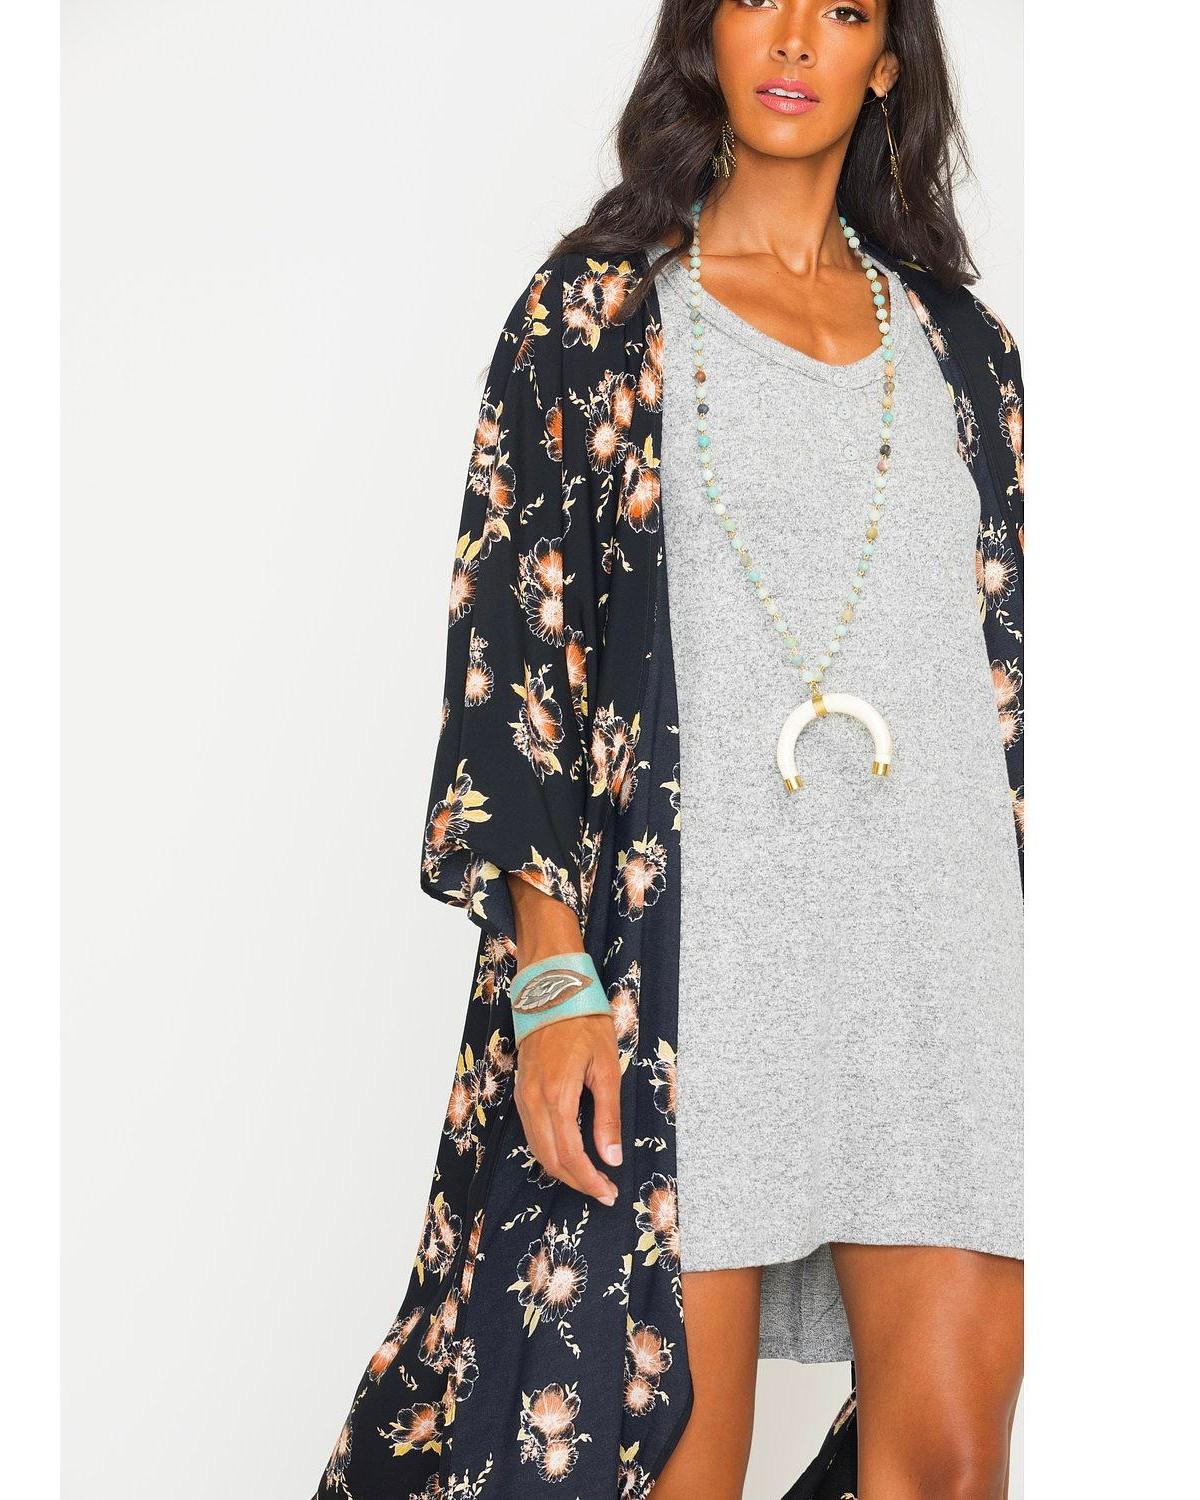 Ces Femme Women's Floral Long Kimono Cardigan - Country Outfitter